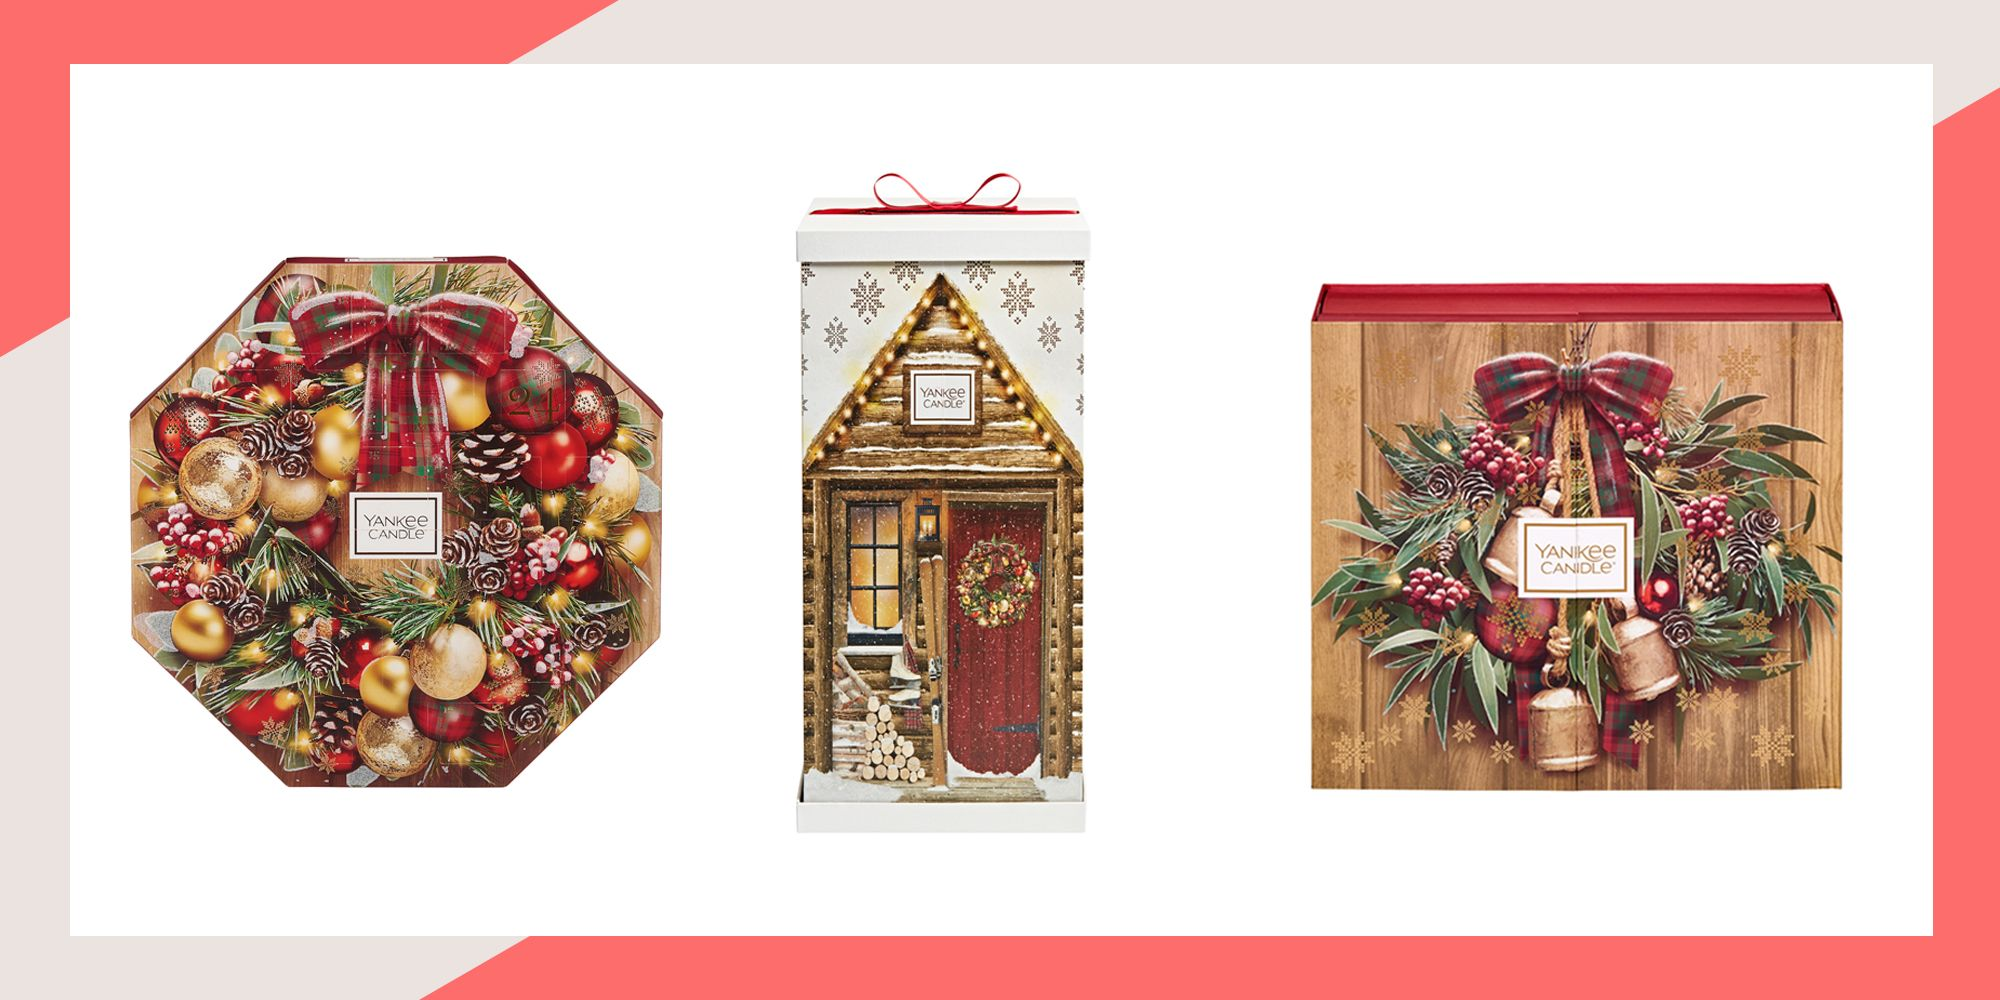 The Yankee Candle advent calendars for 2019 are here – and they smell incredible